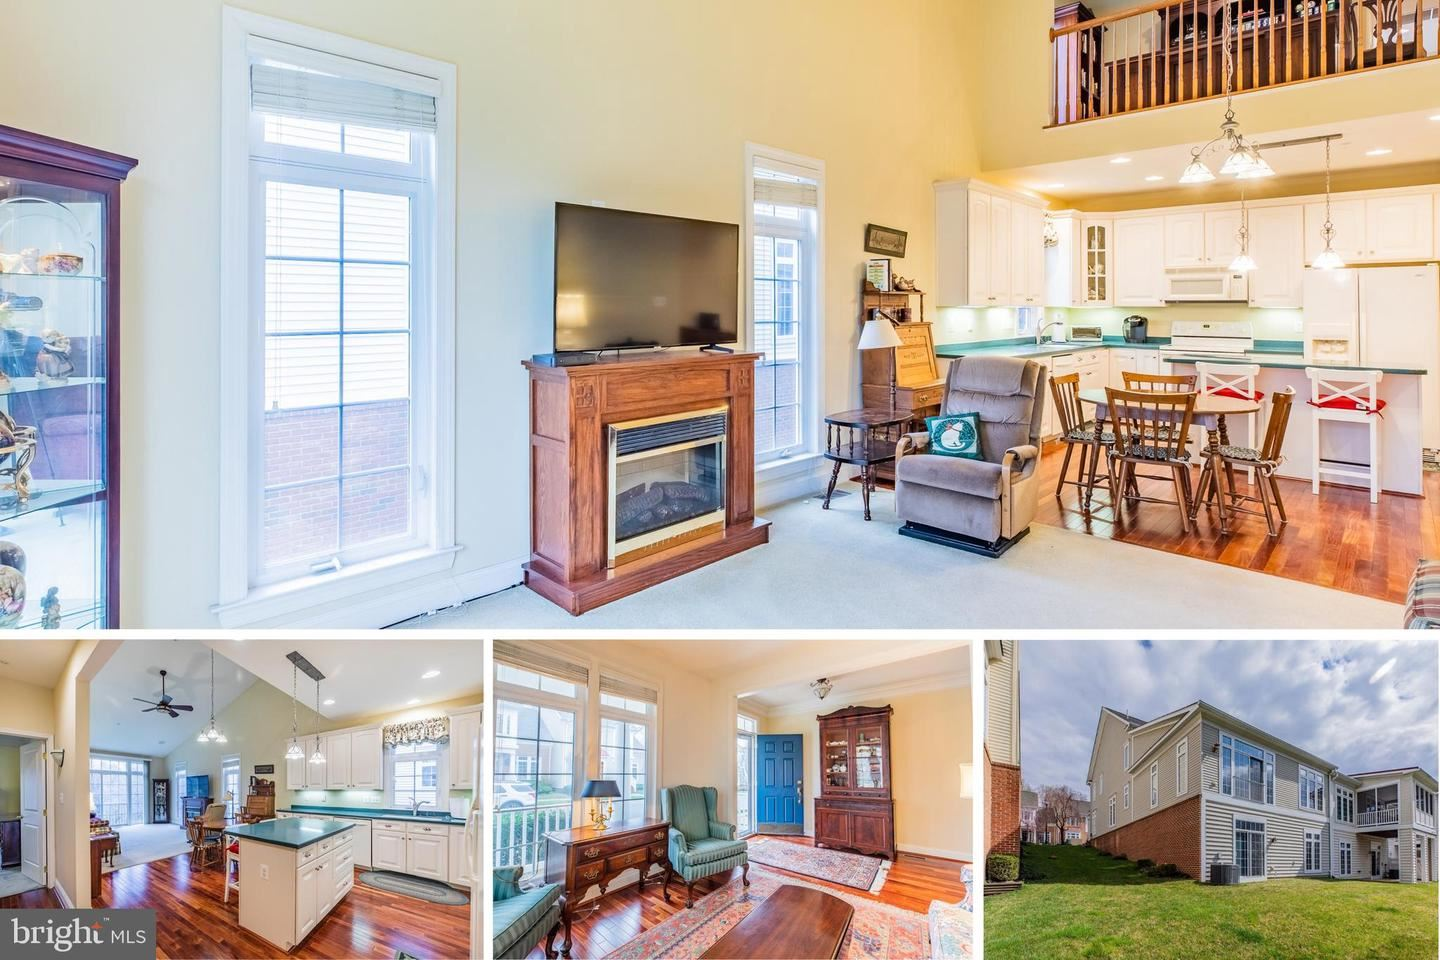 2737 WESTMINSTER RD #17, Ellicott City, MD 21043 - MLS#: MDHW292372